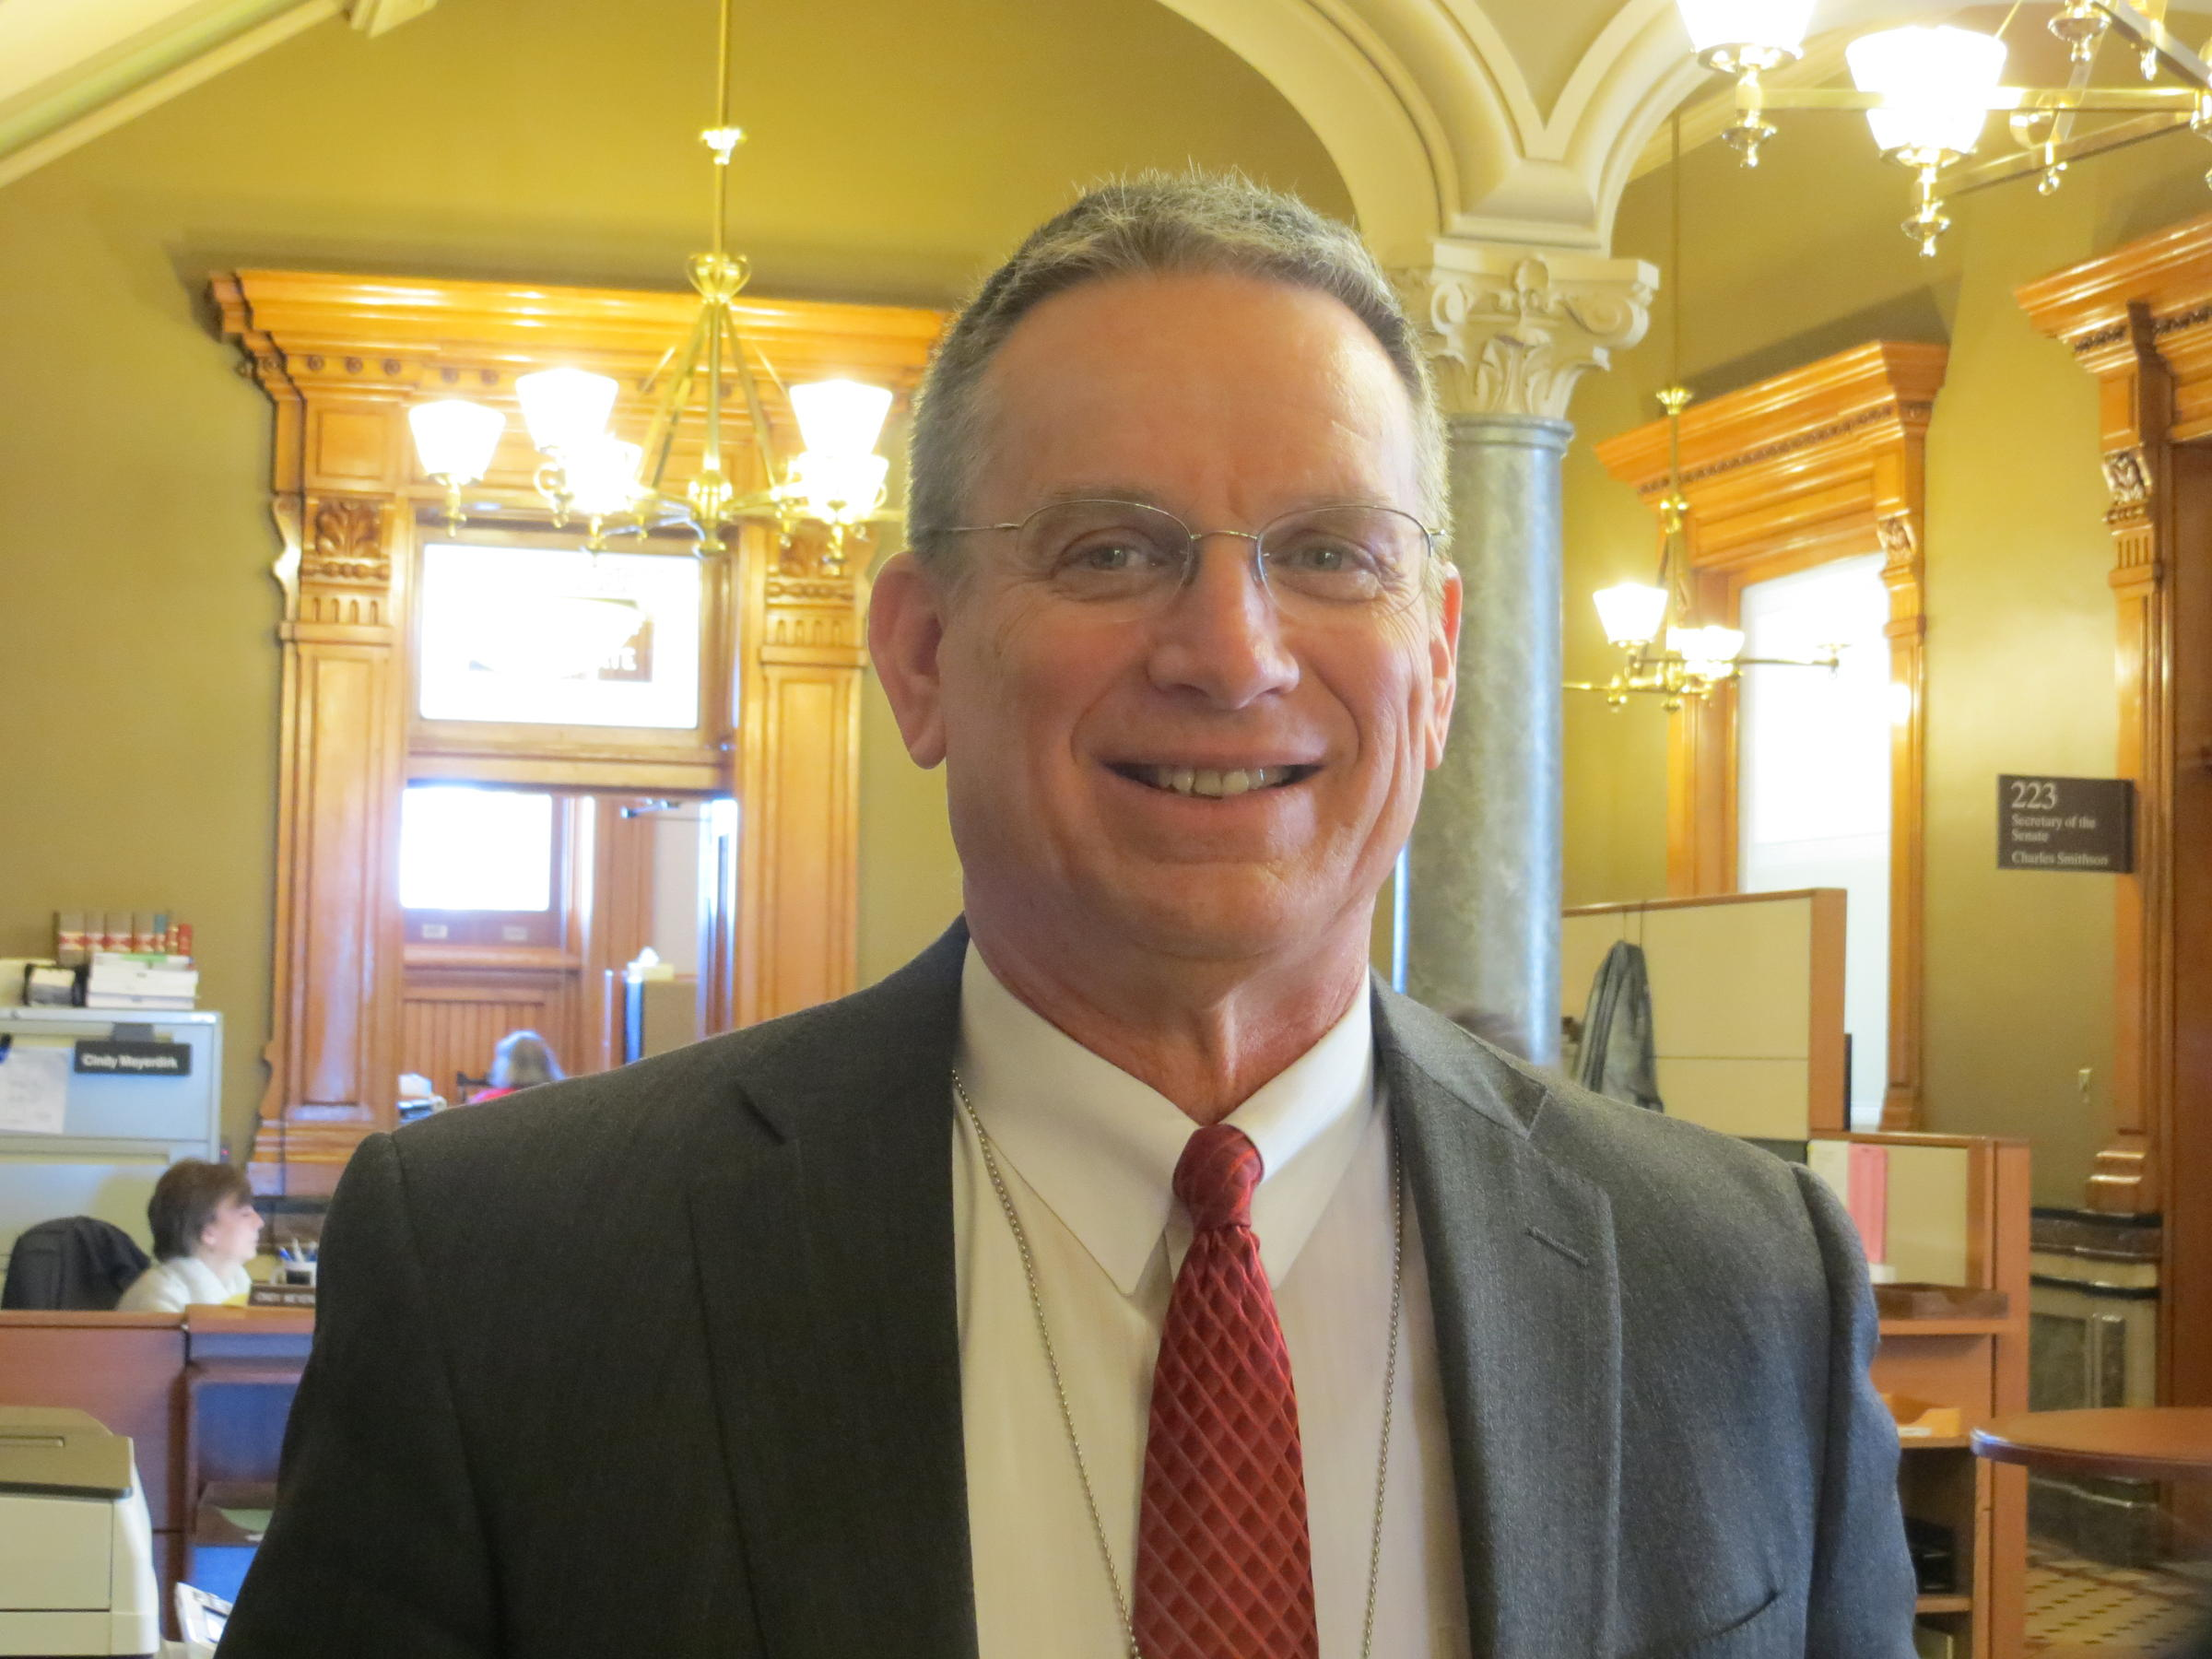 Whitver replaces Dix as Iowa Senate Republican Majority Leader